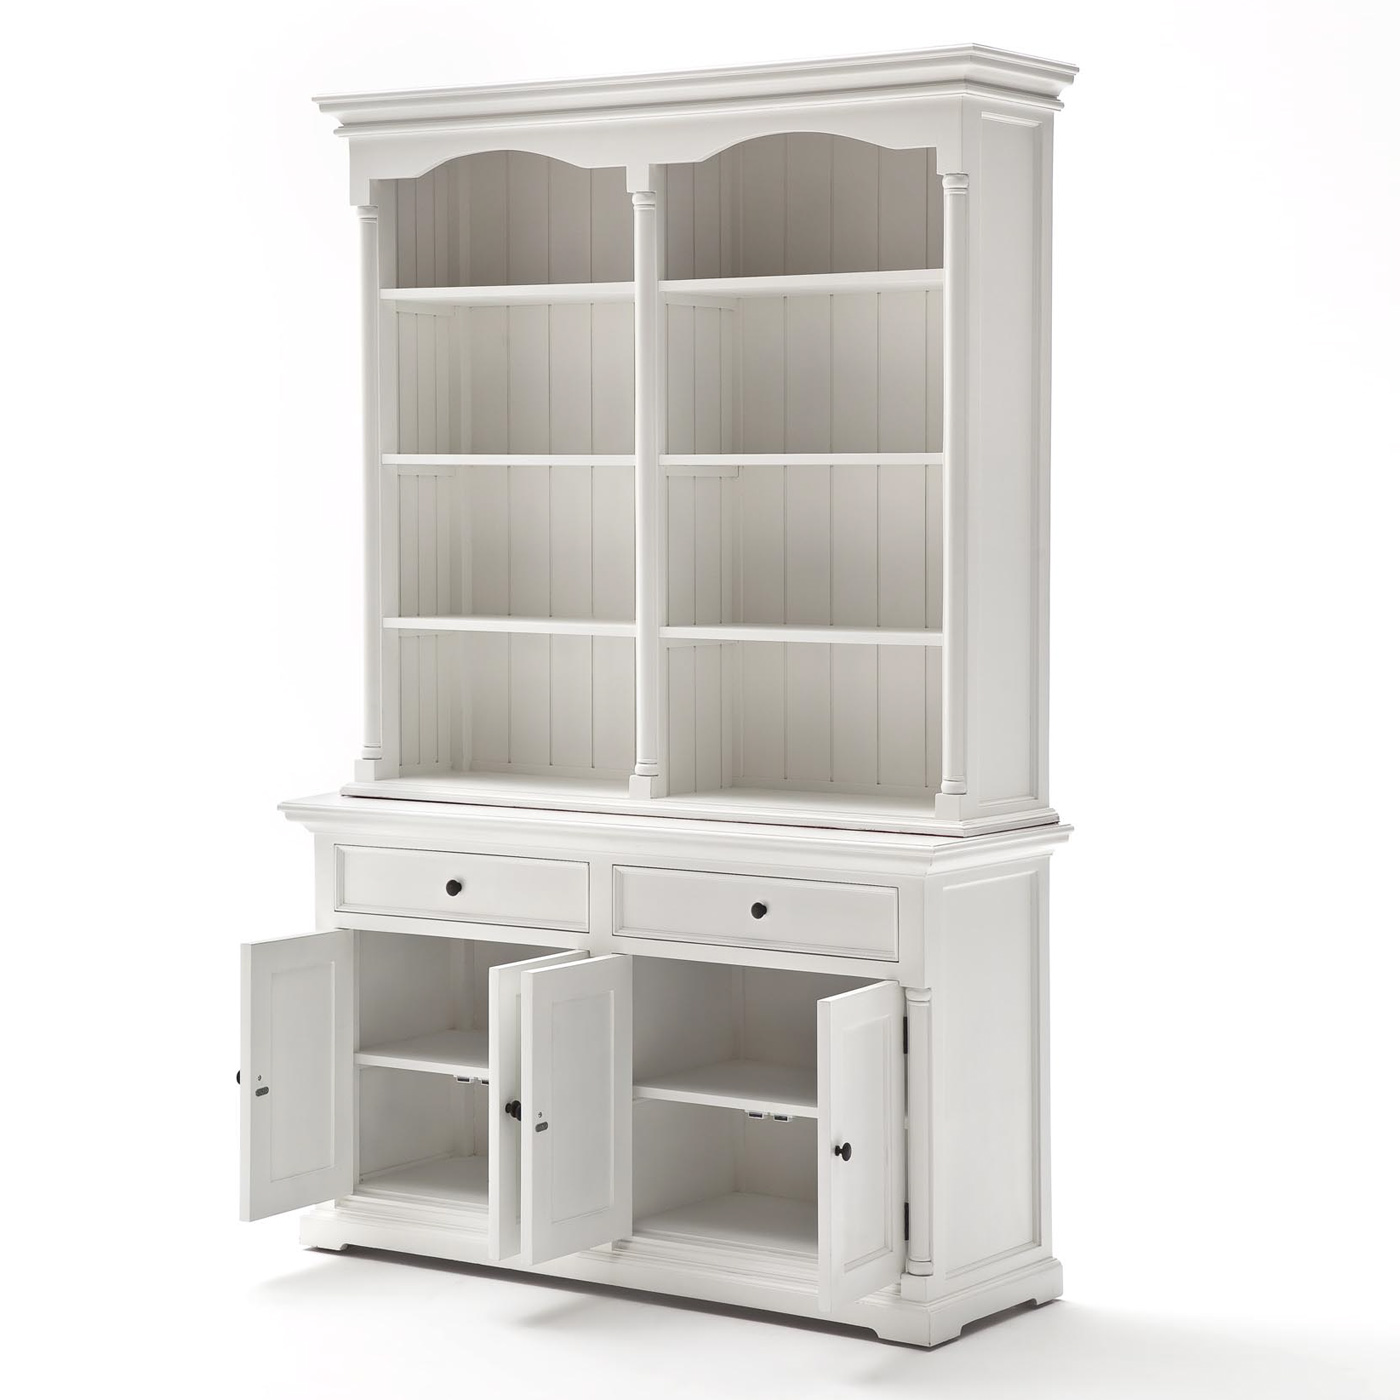 Display Hutch Cabinet Home Furniture Manufacturer Hotel Furniture Wholesale Contract